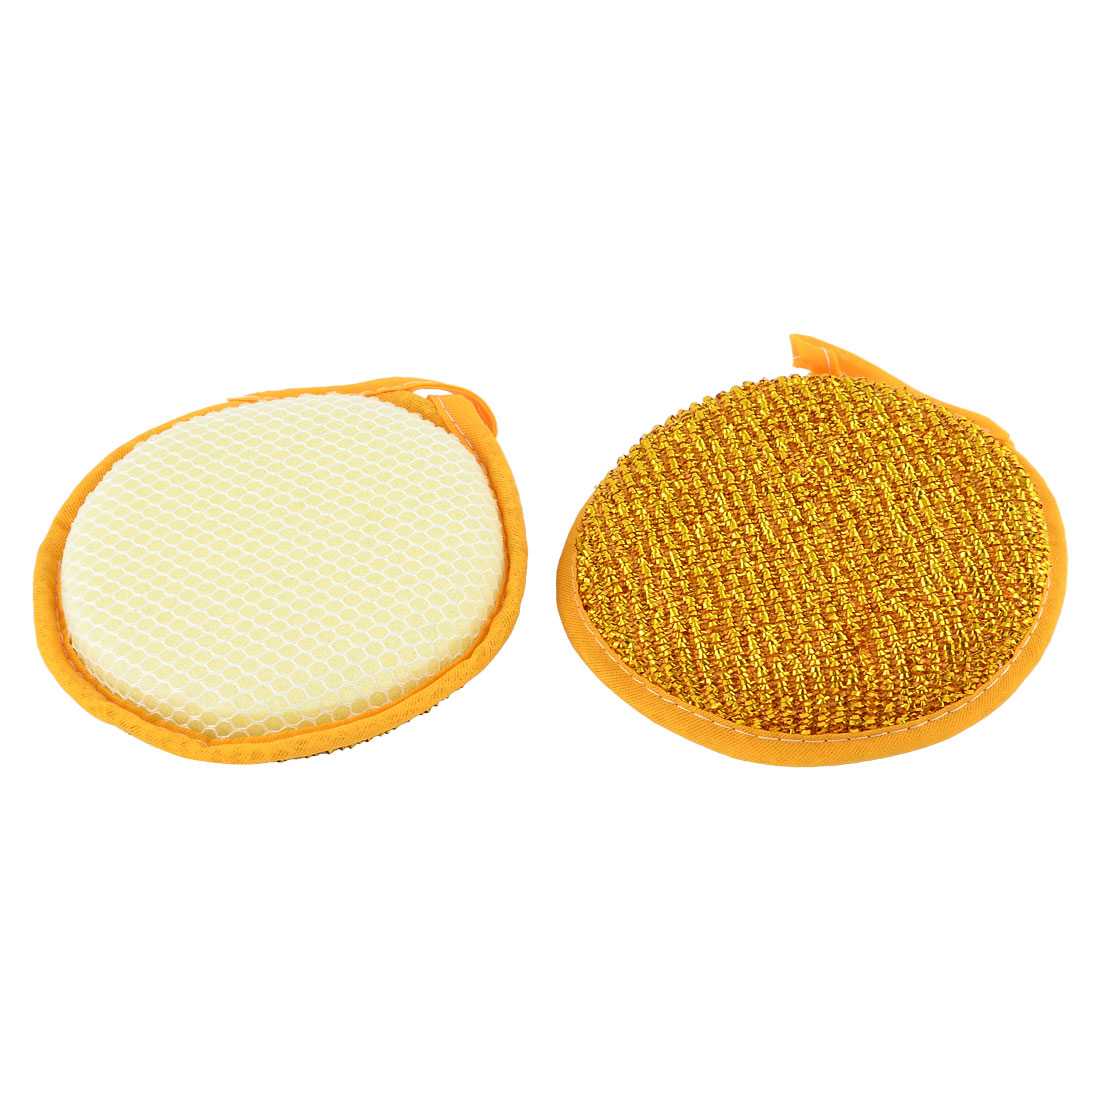 Kitchen Round Shape Block Cleaning Tool Scrubing Bowl Pot Cup Dish Pad Cleaner Yellow 2PCS